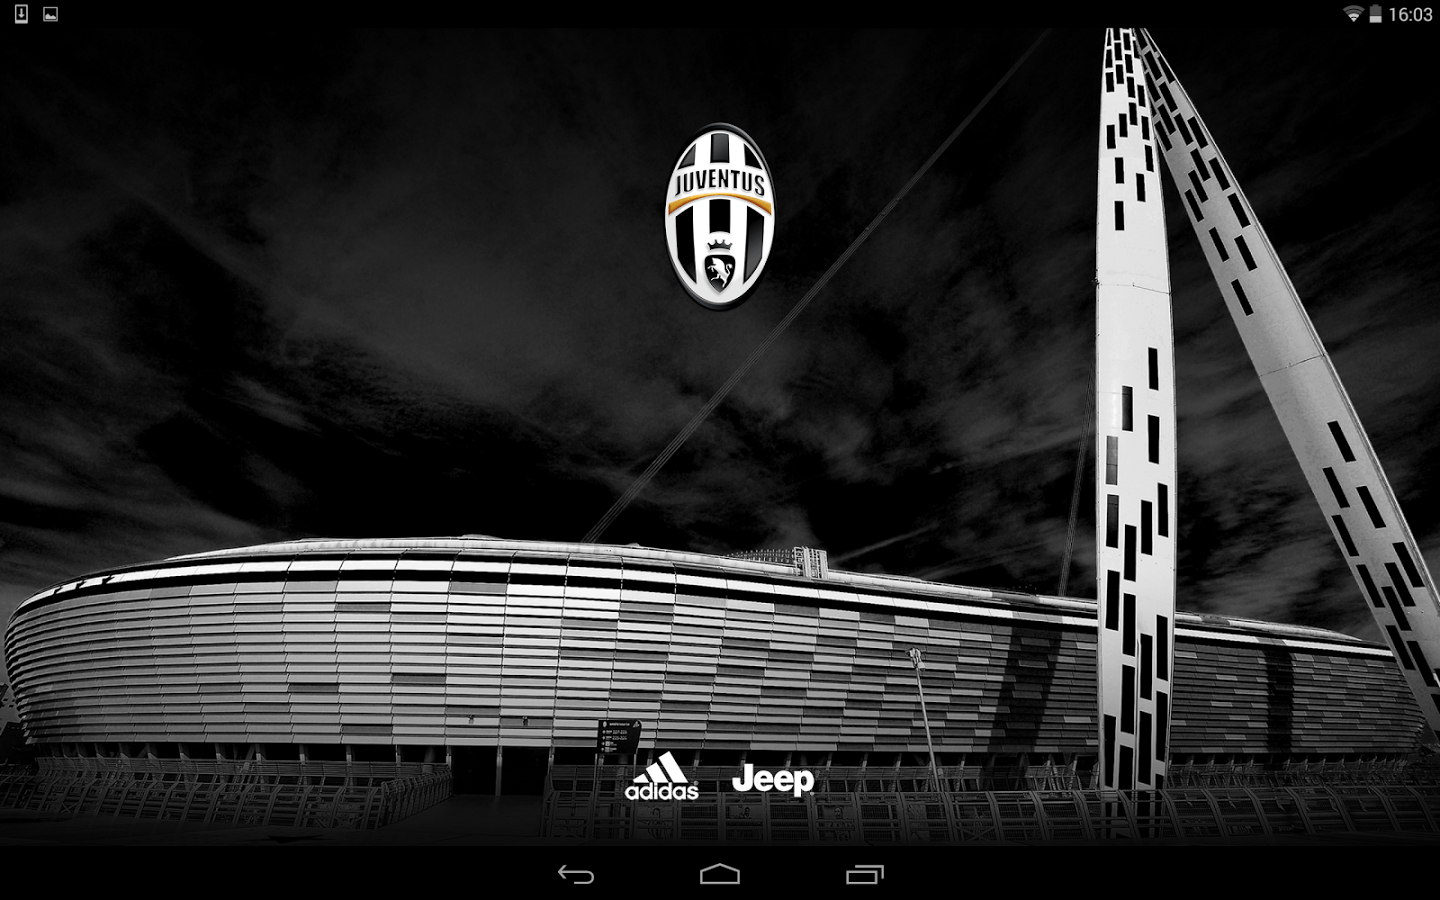 Juventus wallpapers 2016 wallpaper cave juventus android apps on google play voltagebd Image collections